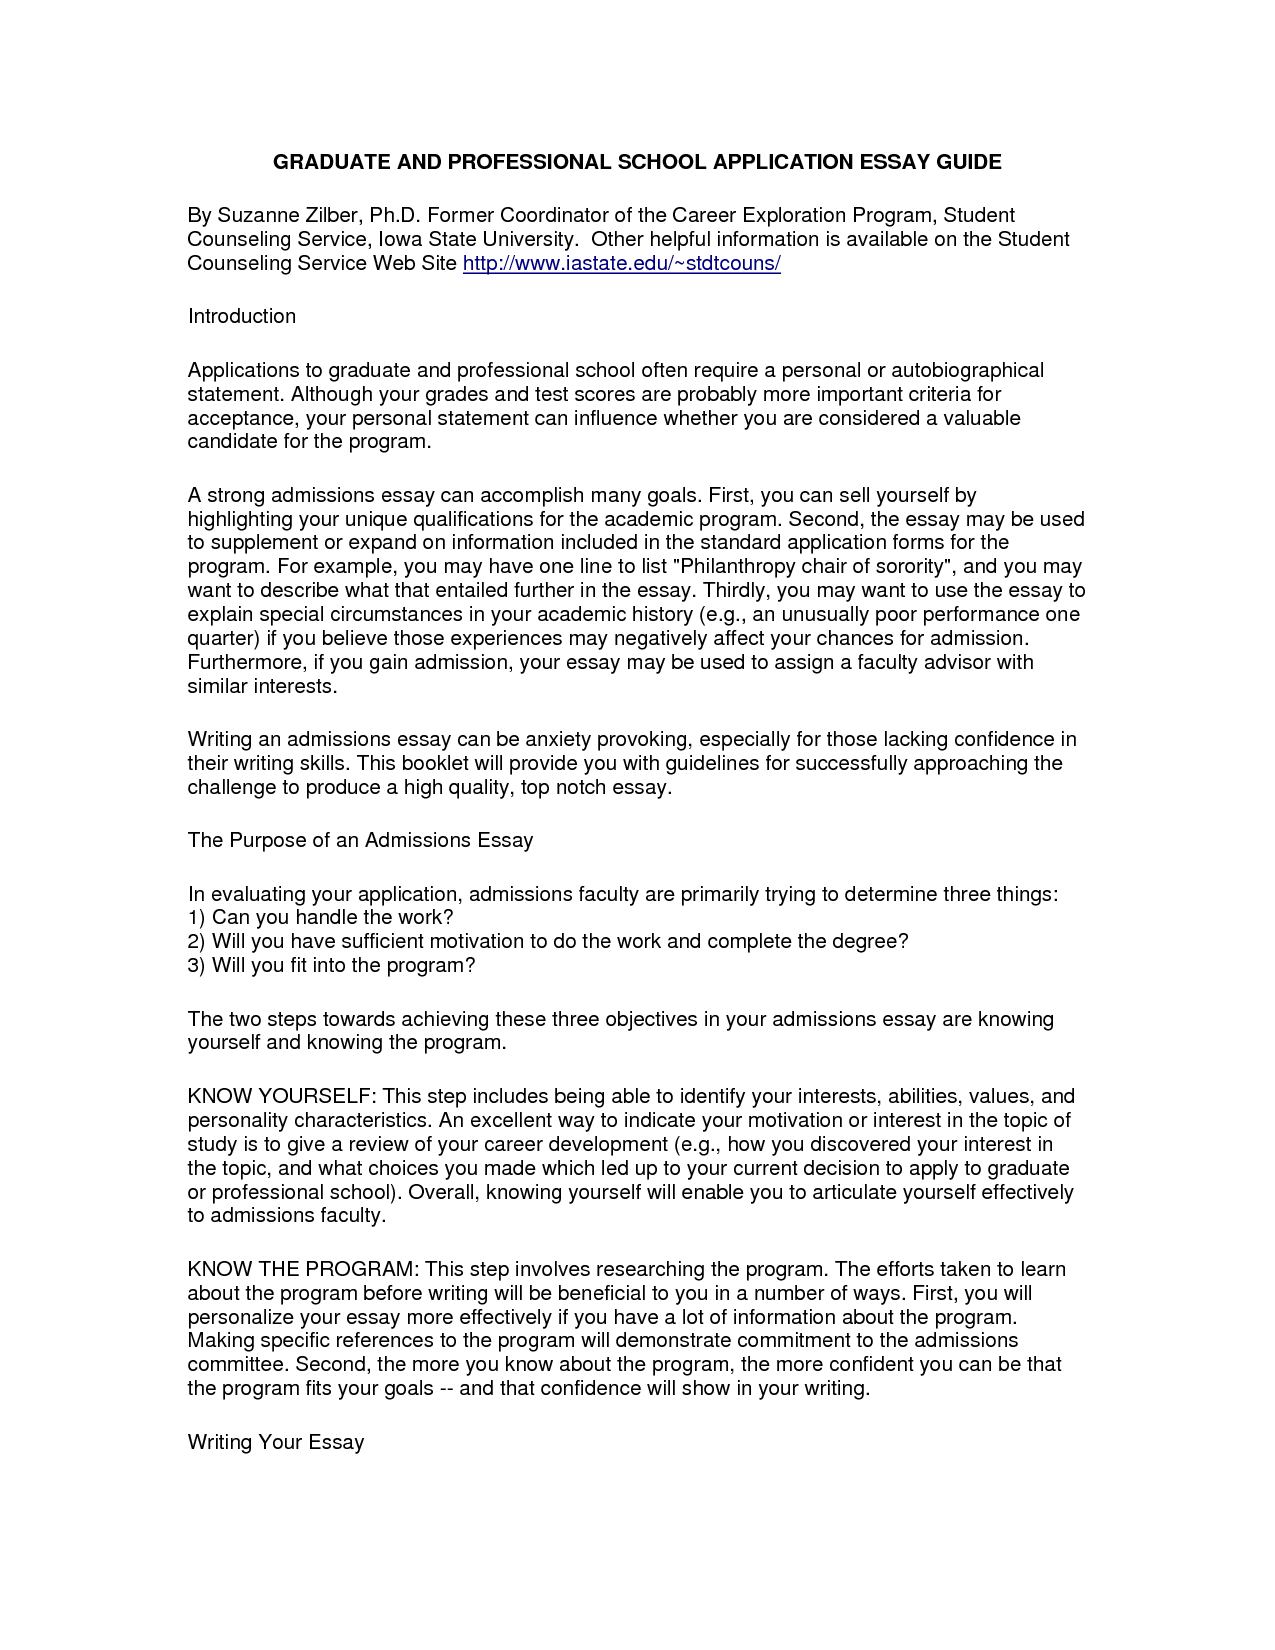 Stanford hamburger college personal statement essay